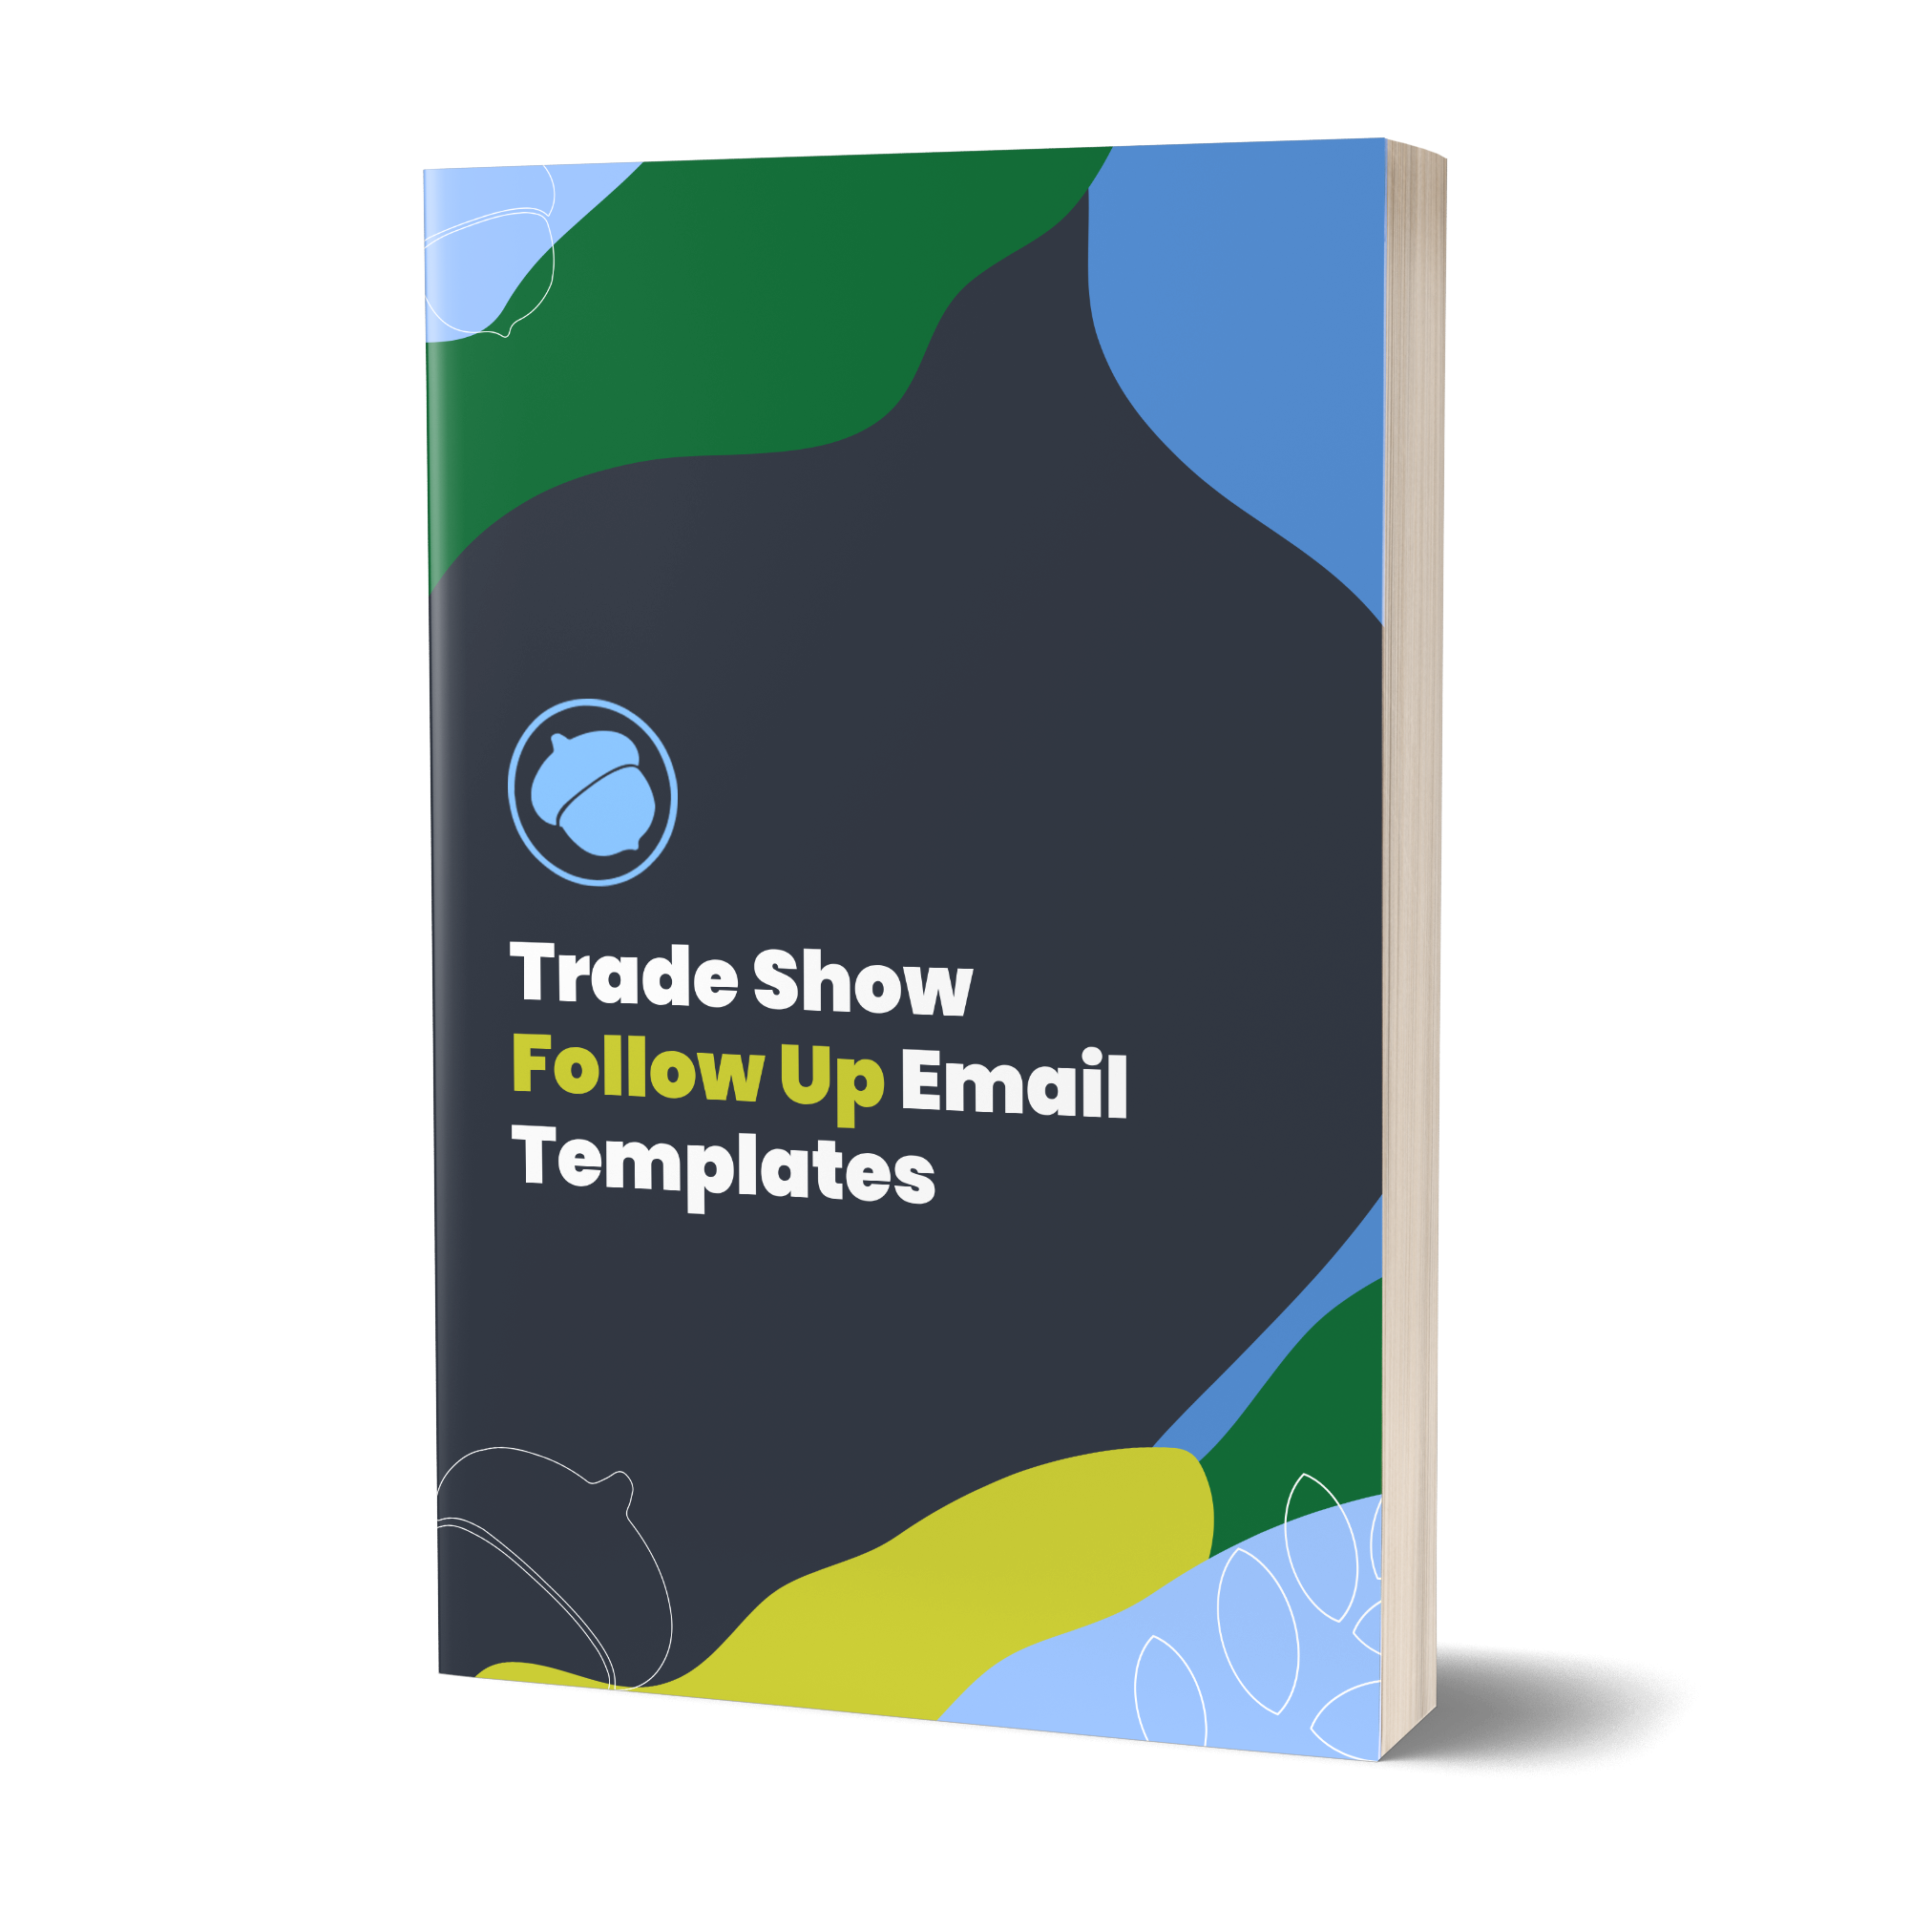 Trade Show Follow up Email Templates